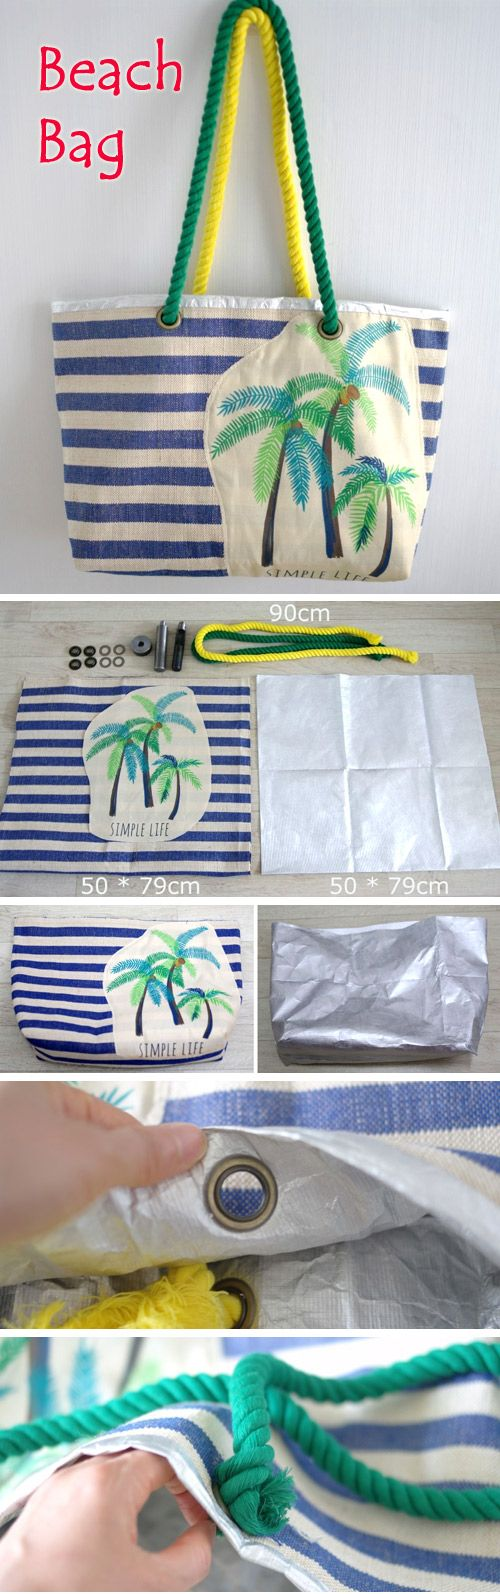 Beach bag made from fabric and waterproof foil. DIY Photo Tutorial. http://www.free-tutorial.net/2016/12/hawaiian-beach-bag.html